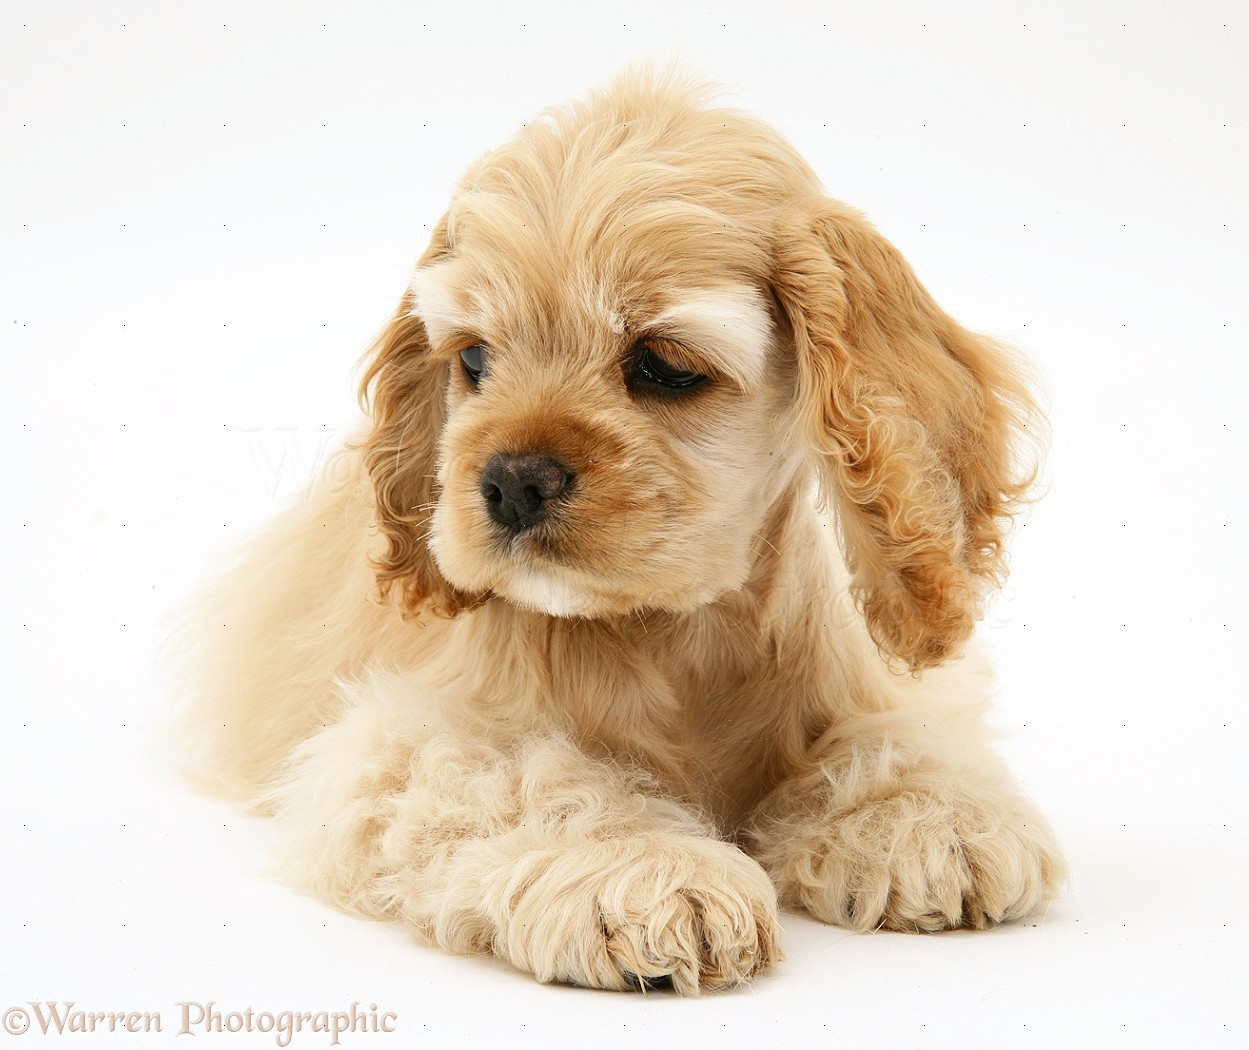 Cute American Cocker Spaniel Puppies: Cute Buff American Cocker Spaniel Pup Breed